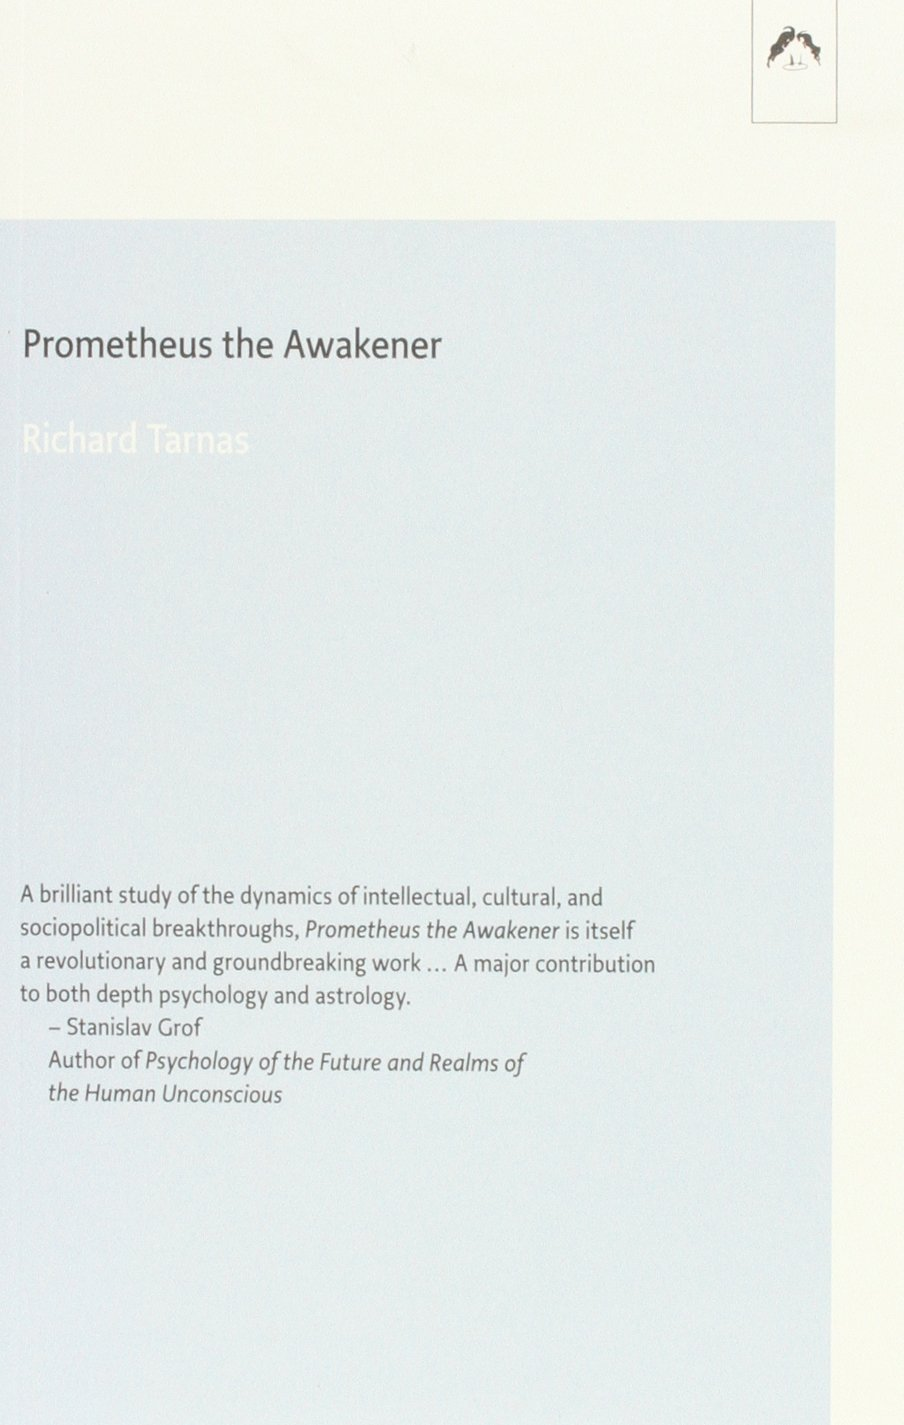 prometheus the awakener essay on the archetypal meaning of the prometheus the awakener essay on the archetypal meaning of the planet uranus dunquin series amazon co uk richard tarnas 9780882142210 books